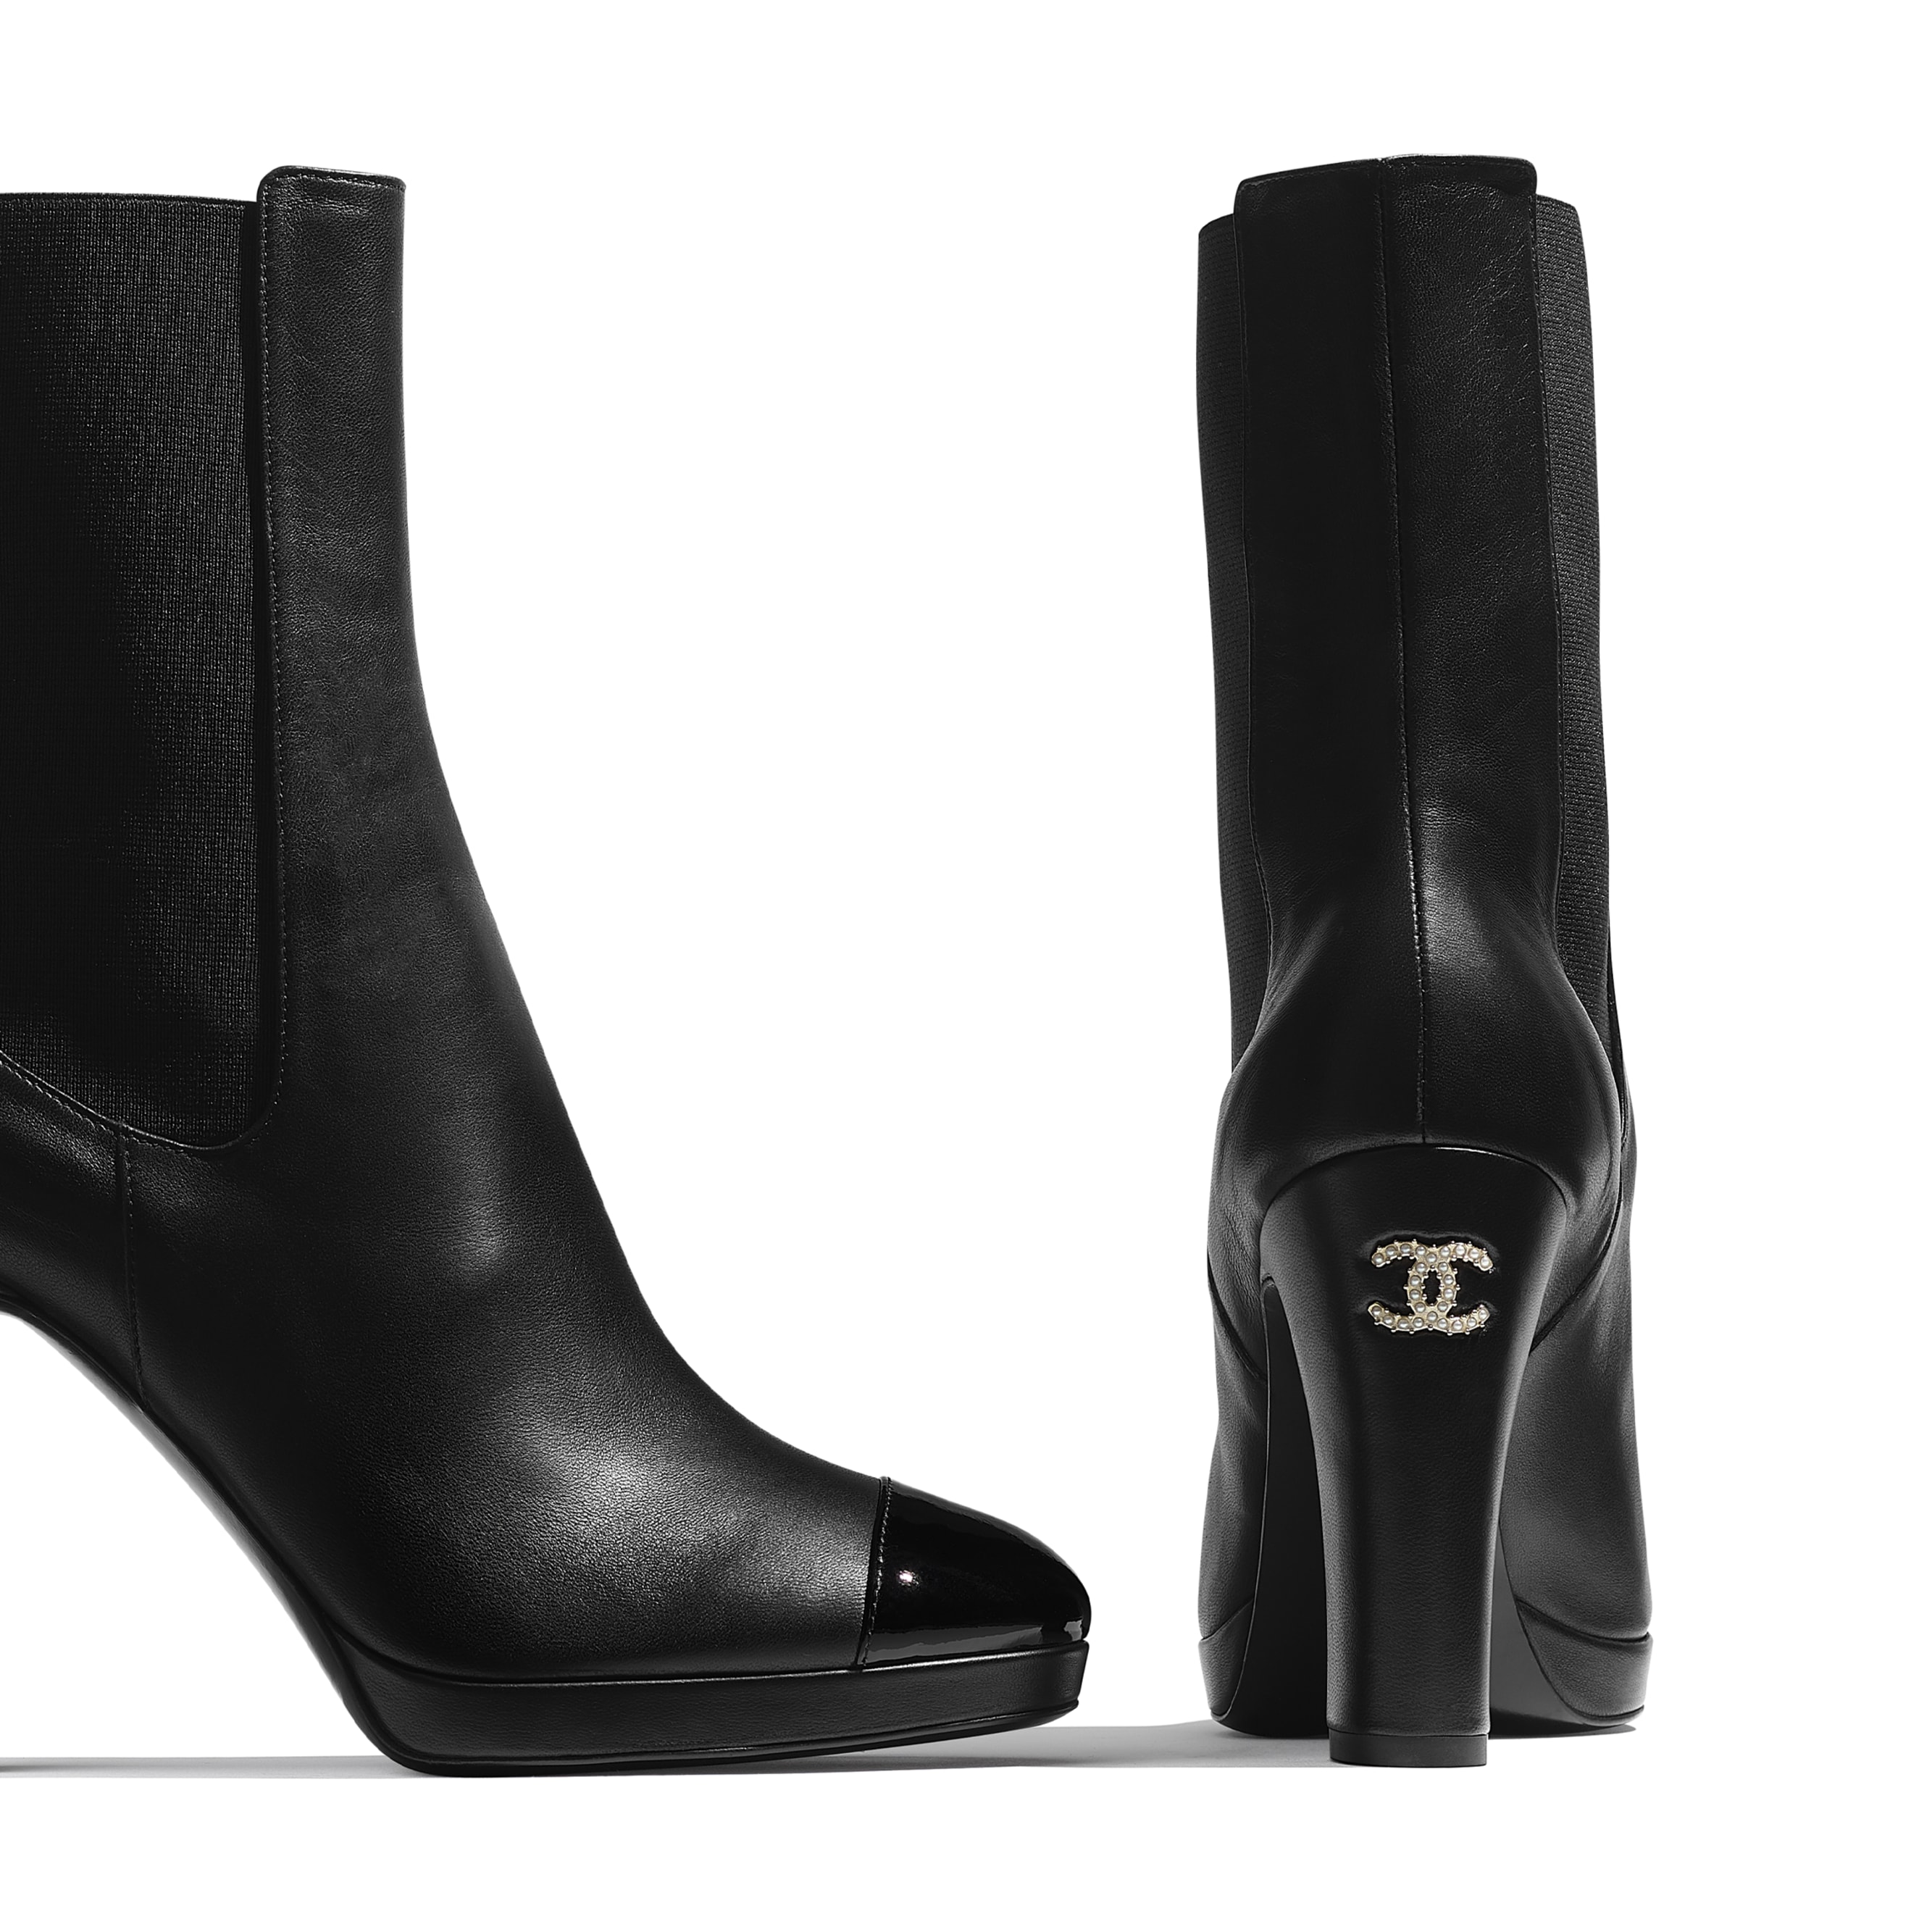 Ankle Boots - Black - Lambskin & Patent Calfskin - CHANEL - Extra view - see standard sized version